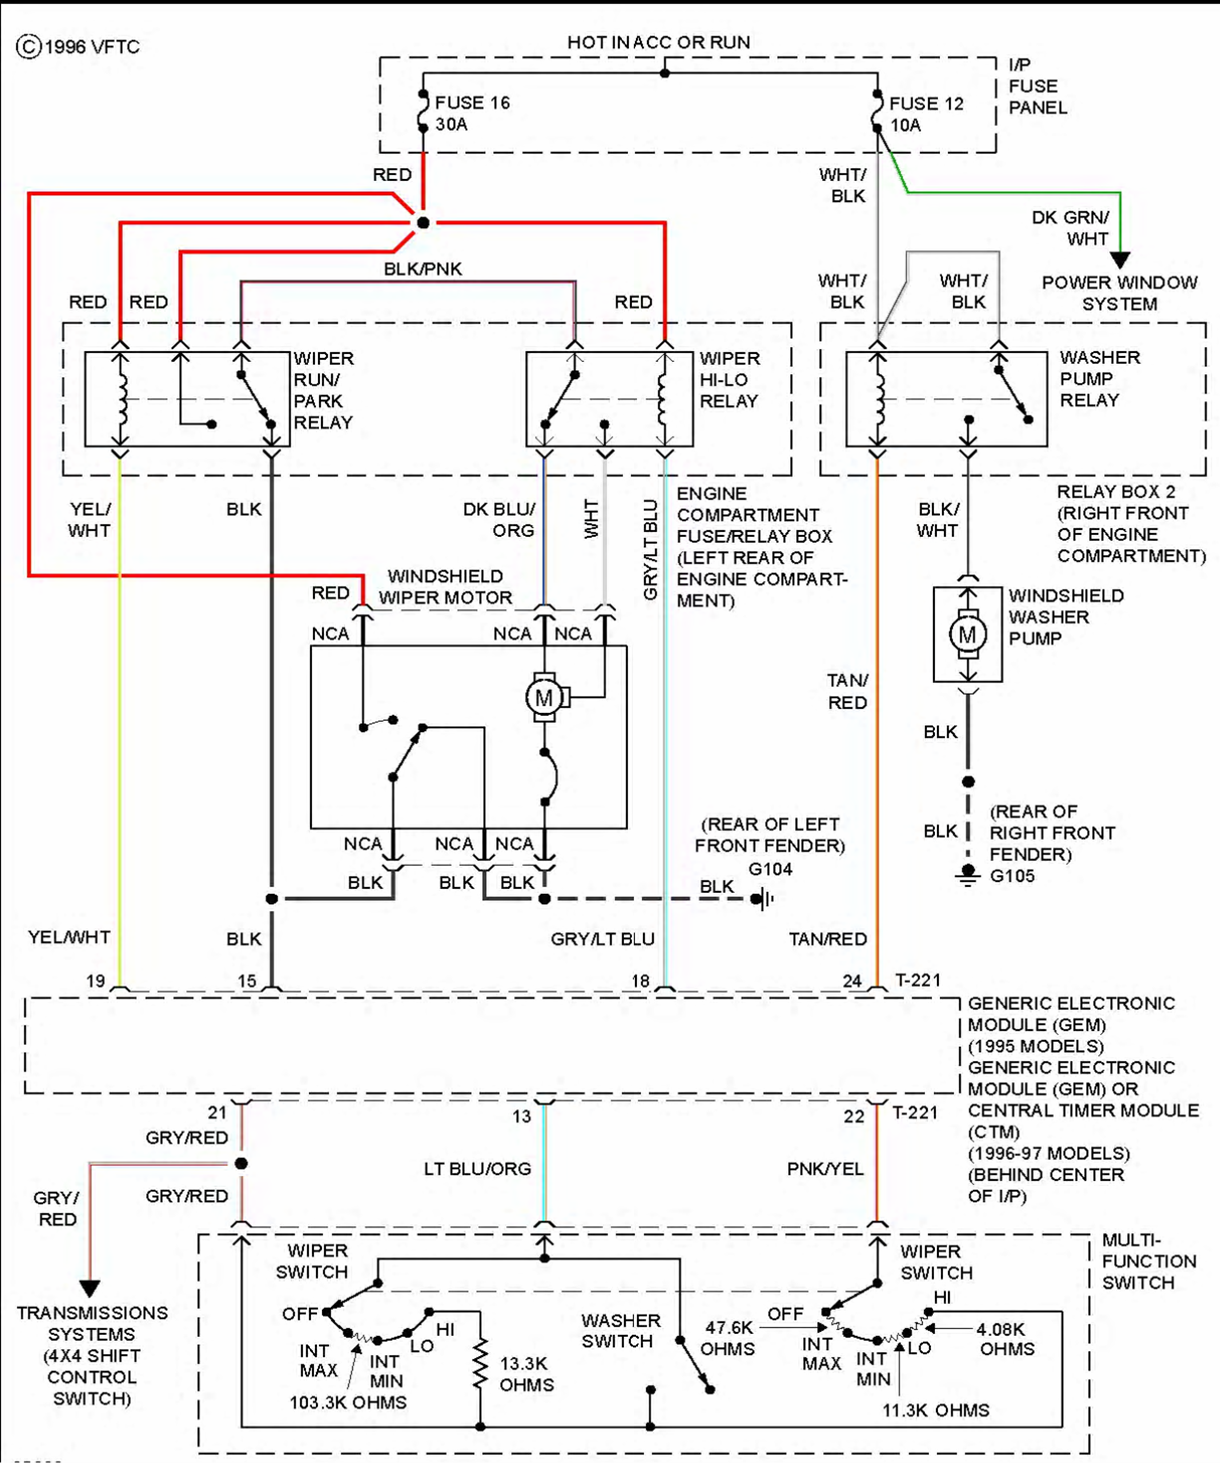 DIAGRAM] 2007 Isuzu W3500 Wiring Diagram FULL Version HD Quality Wiring  Diagram - DIAGRAMACIONES.CONDITIONSENSEIGNANTES.FR diagramaciones.conditionsenseignantes.fr